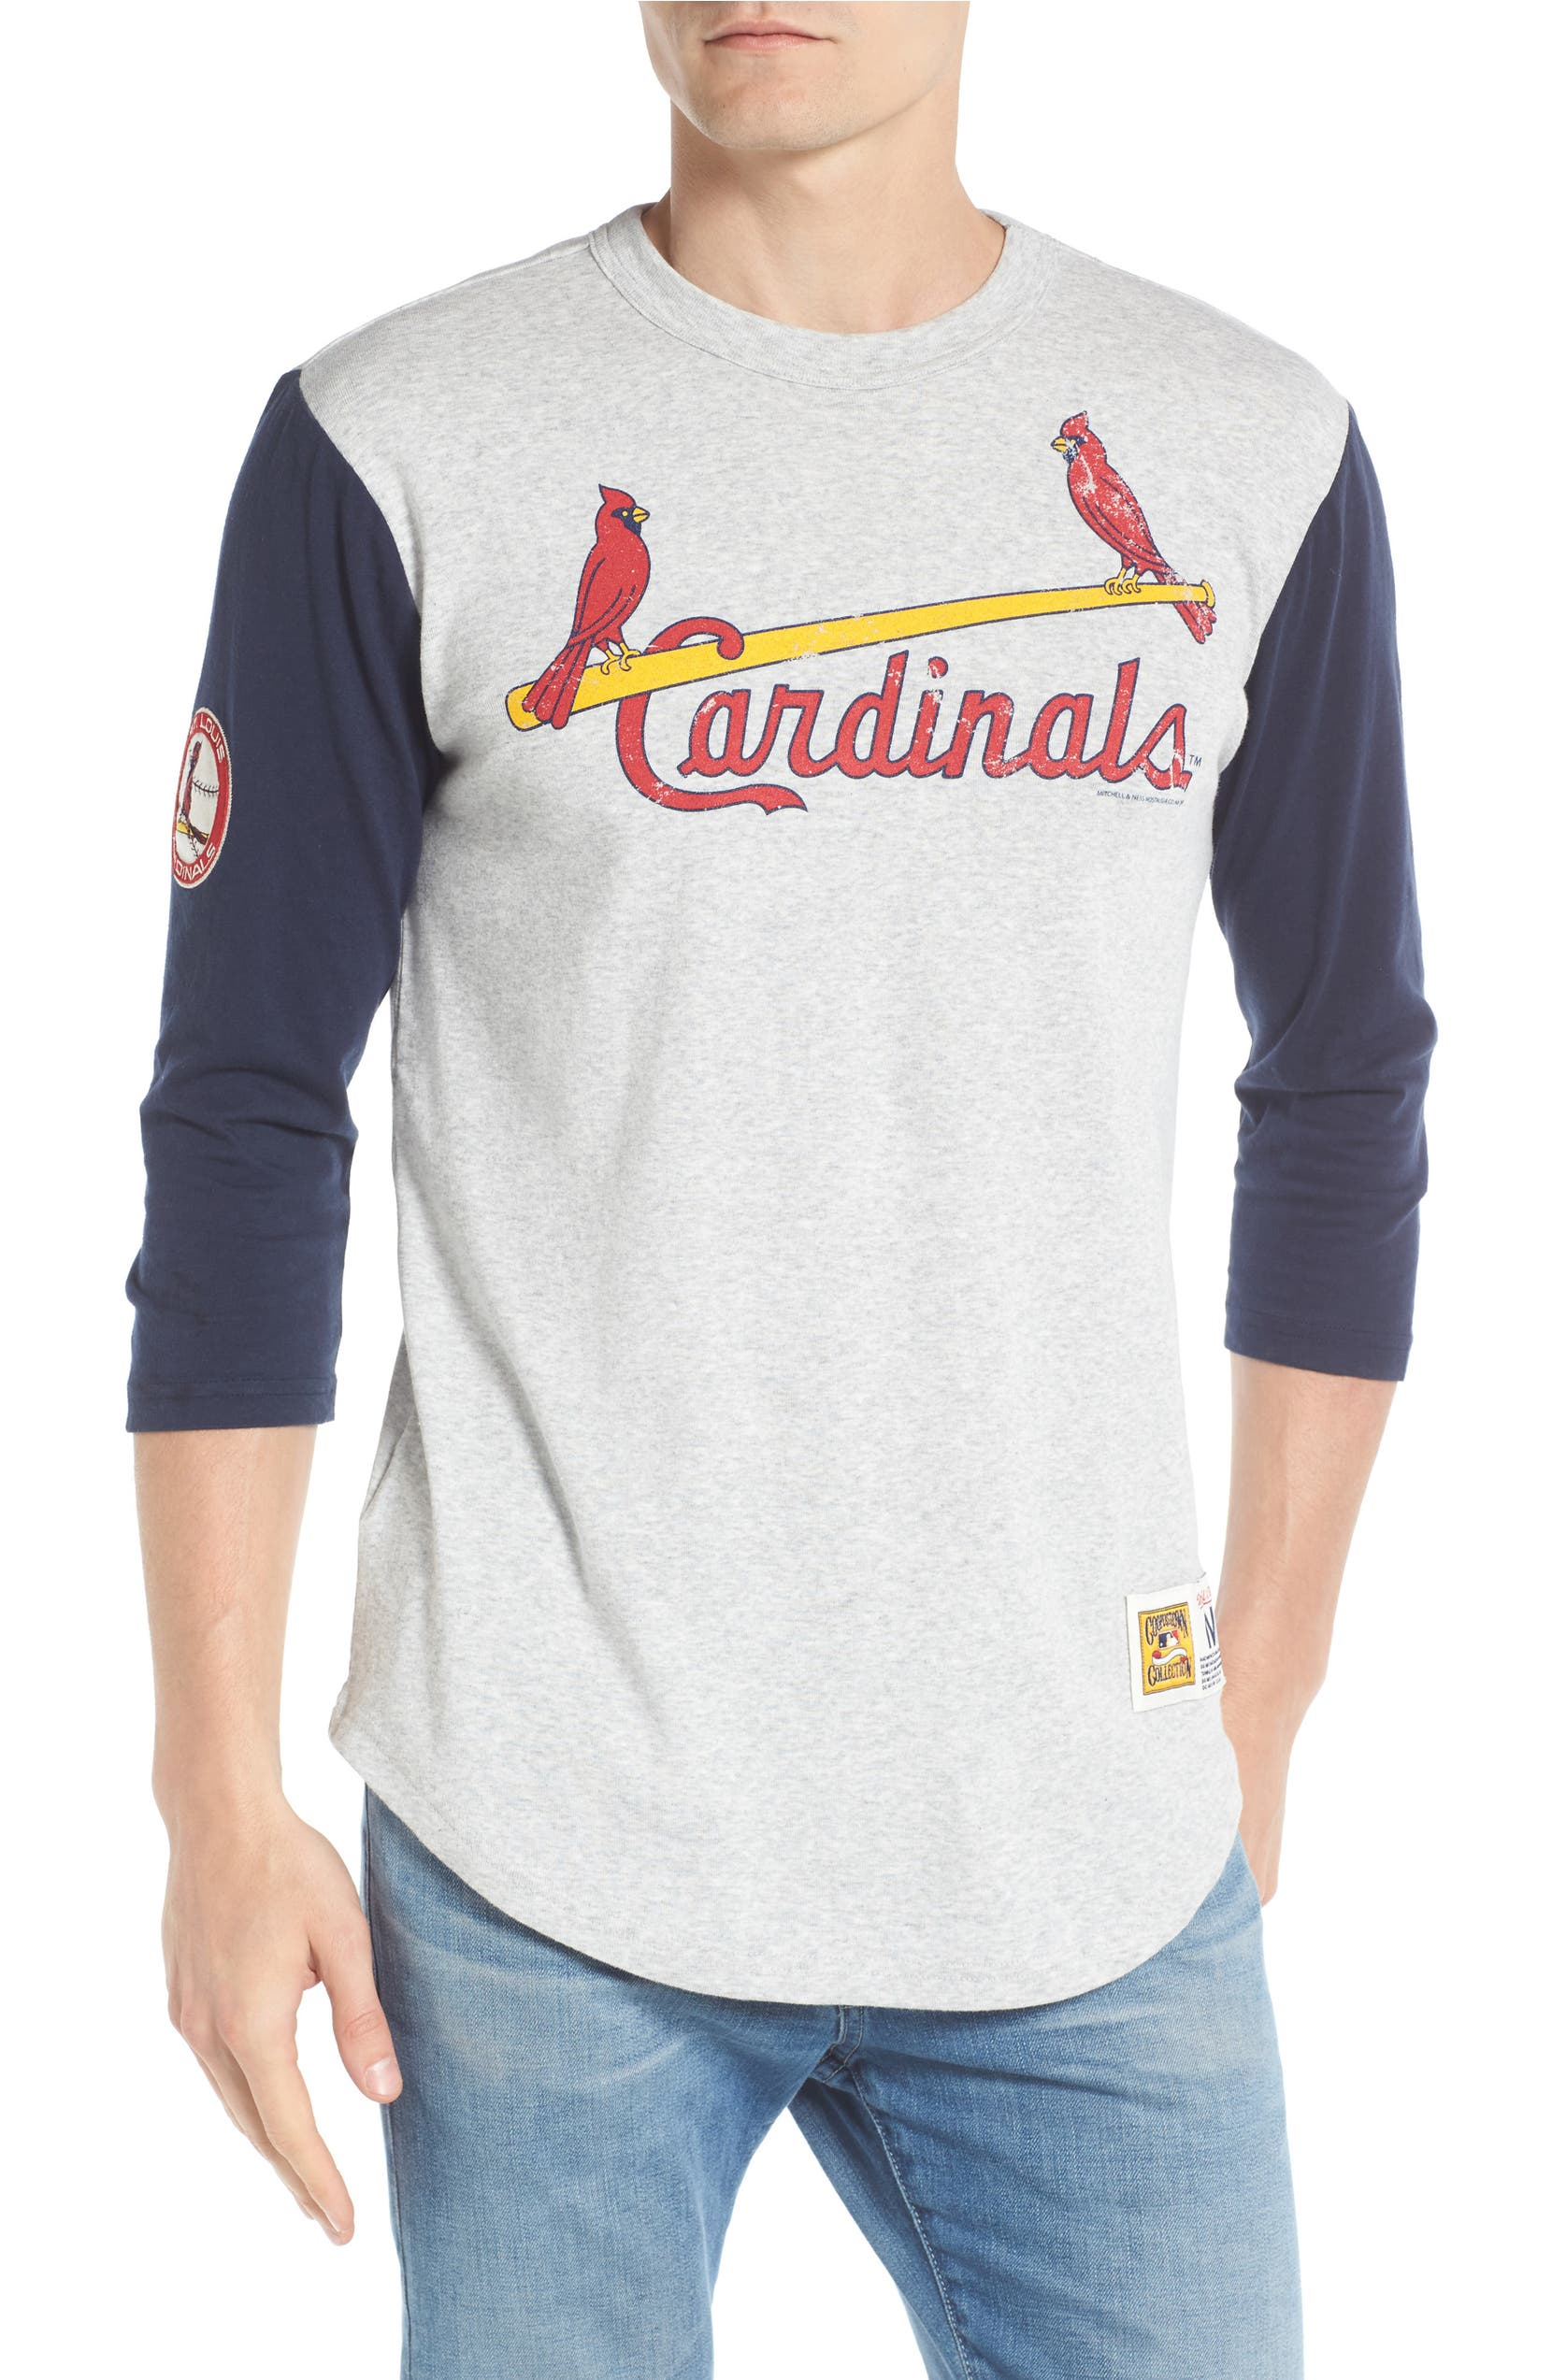 new styles f8604 121c6 Mitchell & Ness Scoring Position - St. Louis Cardinals ...